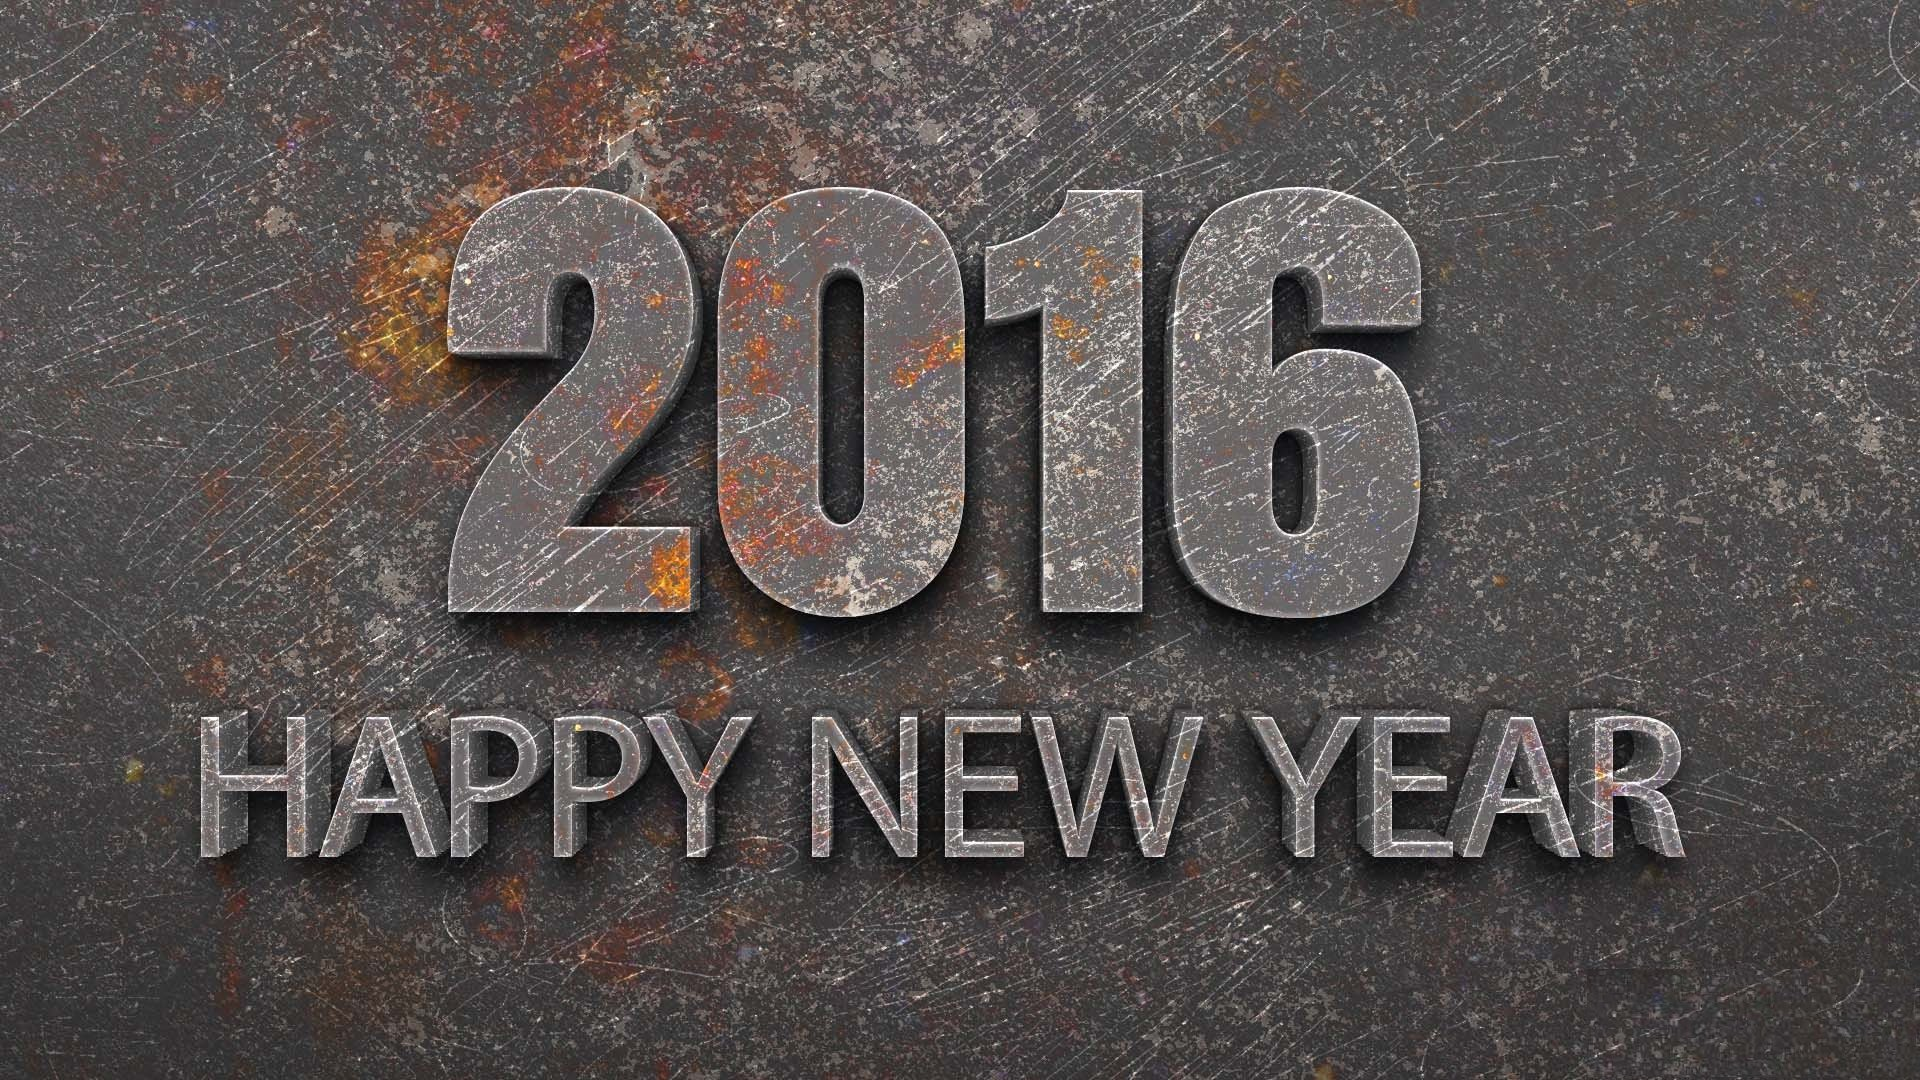 Happy New Year 2016 Wallpapers Pictures Images 1920x1080